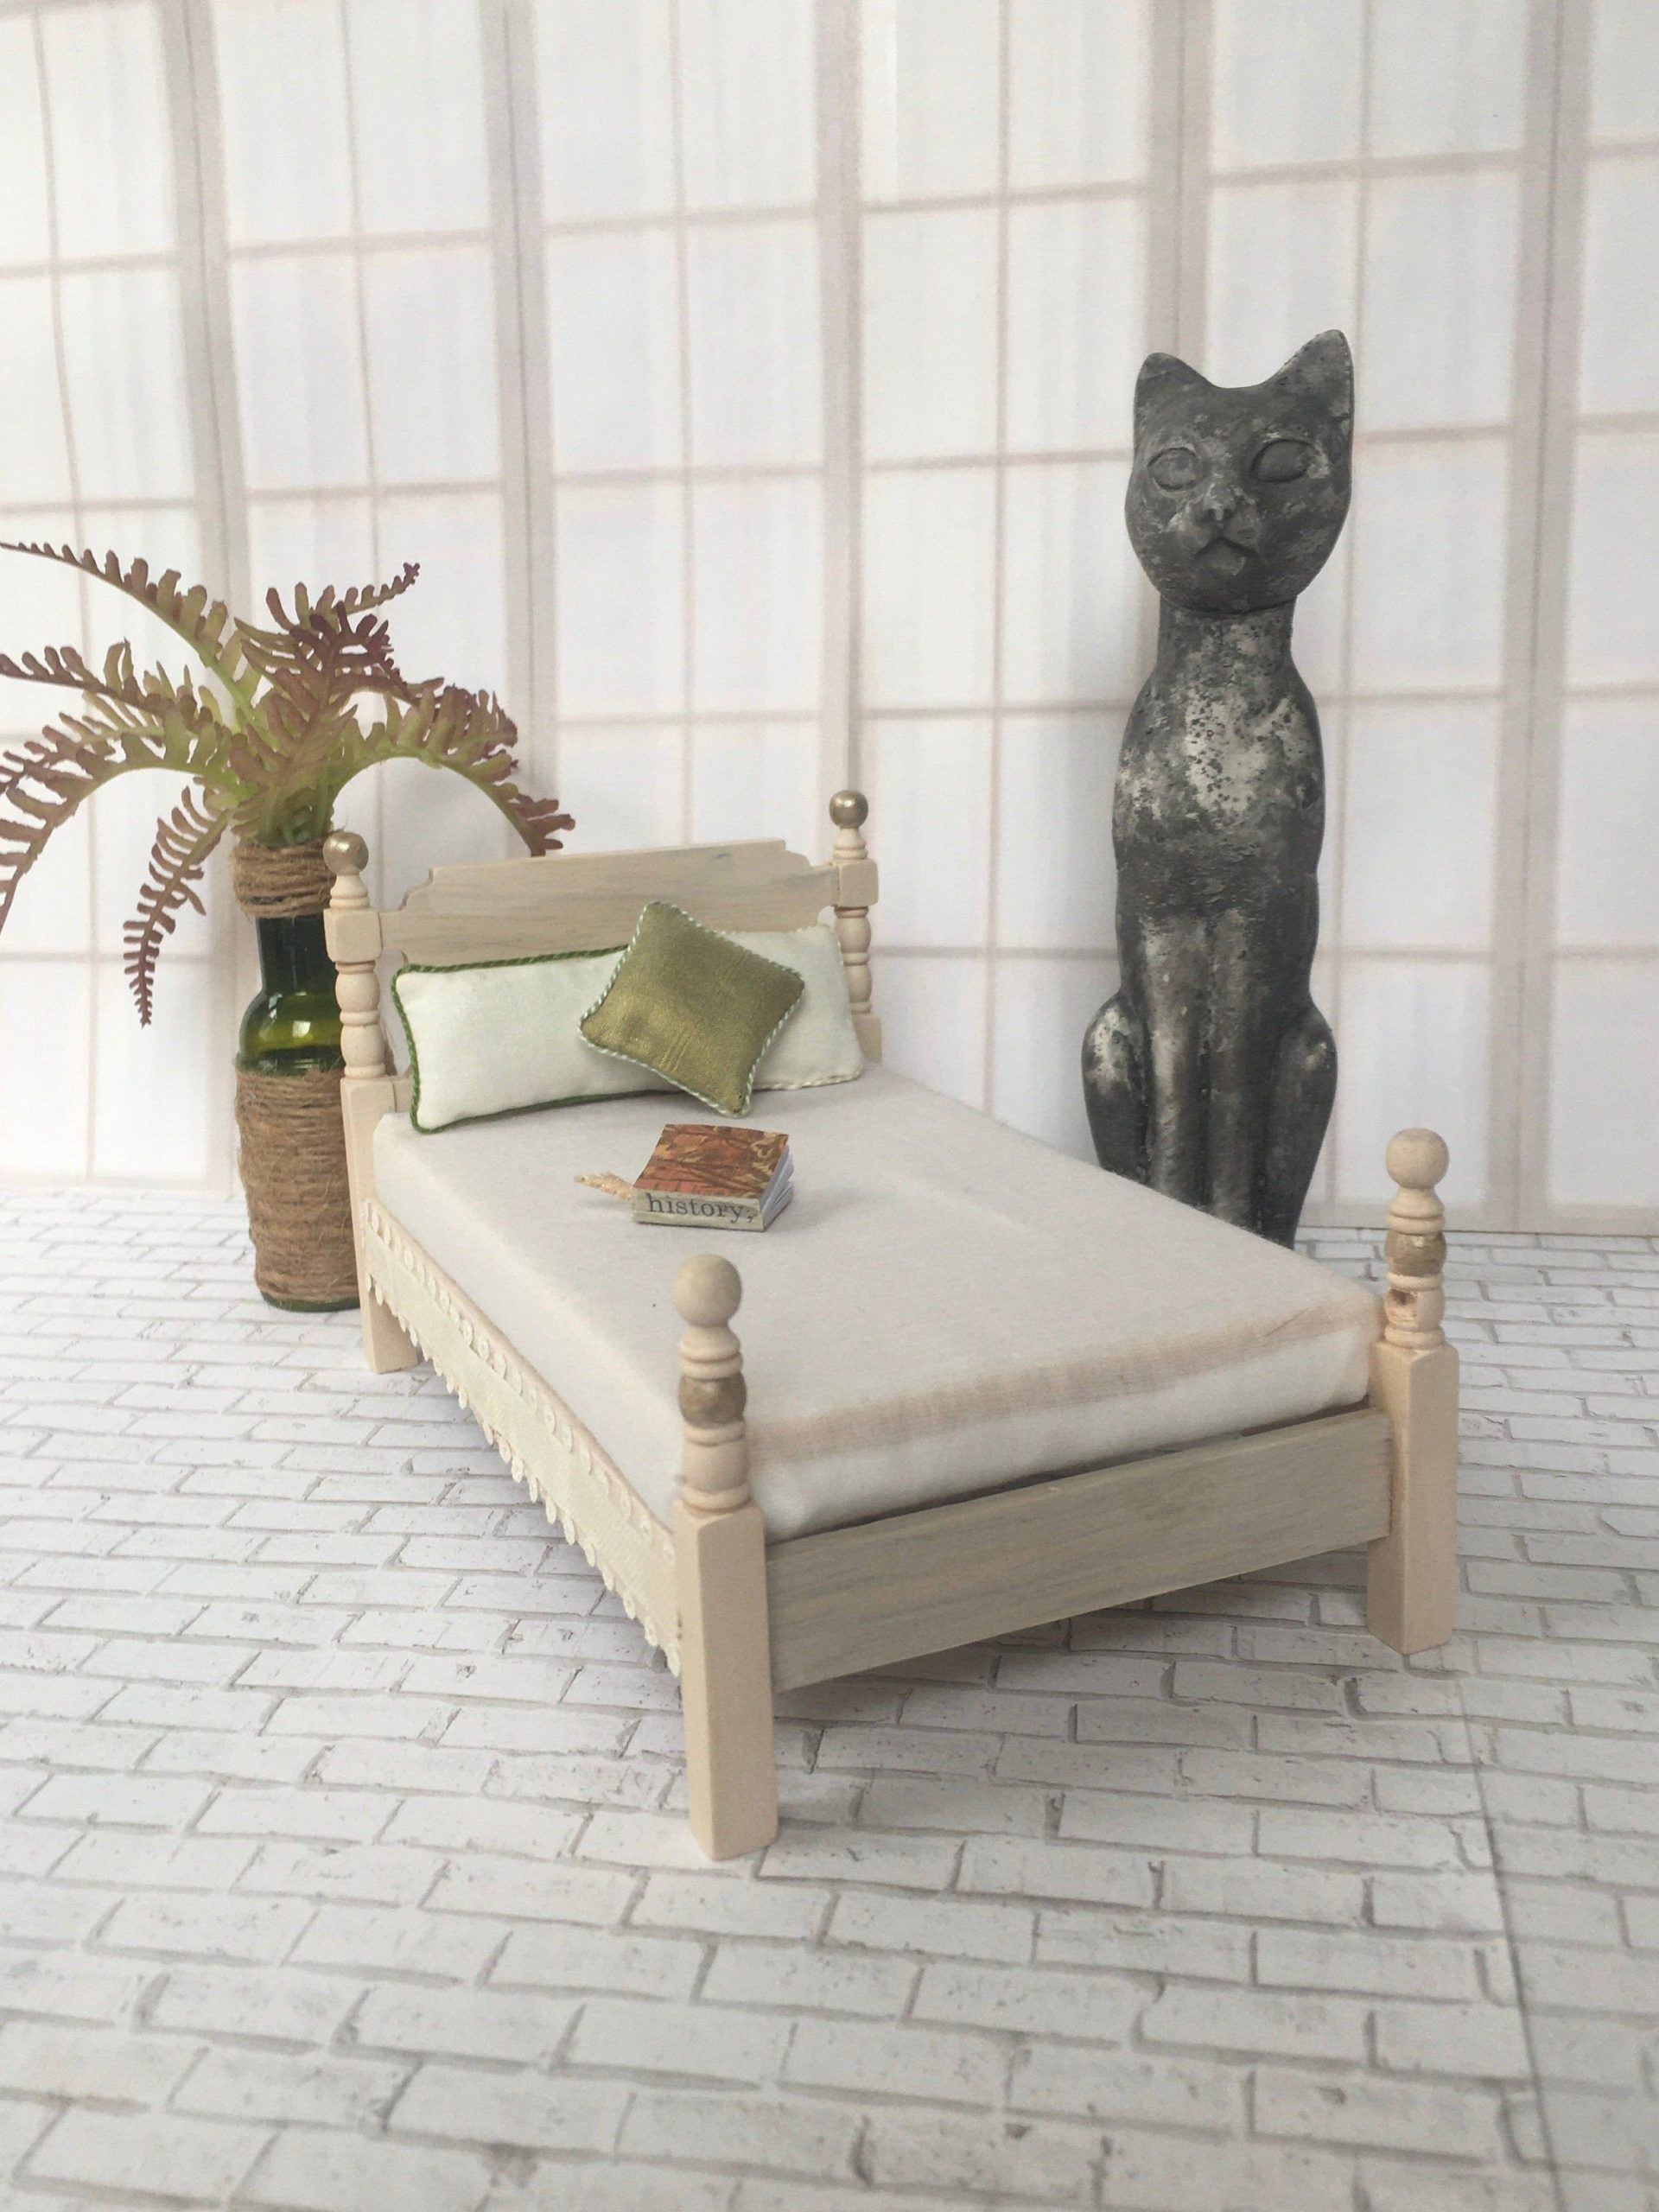 Island Cottage Vintage Wood Twin Bed Frame And Mattress Set Dollhouse Miniature Or Diorama 1 12 Scale Bed Co Bed Frame Mattress Wood Twin Bed Twin Bed Frame Twin bed frame and mattress set